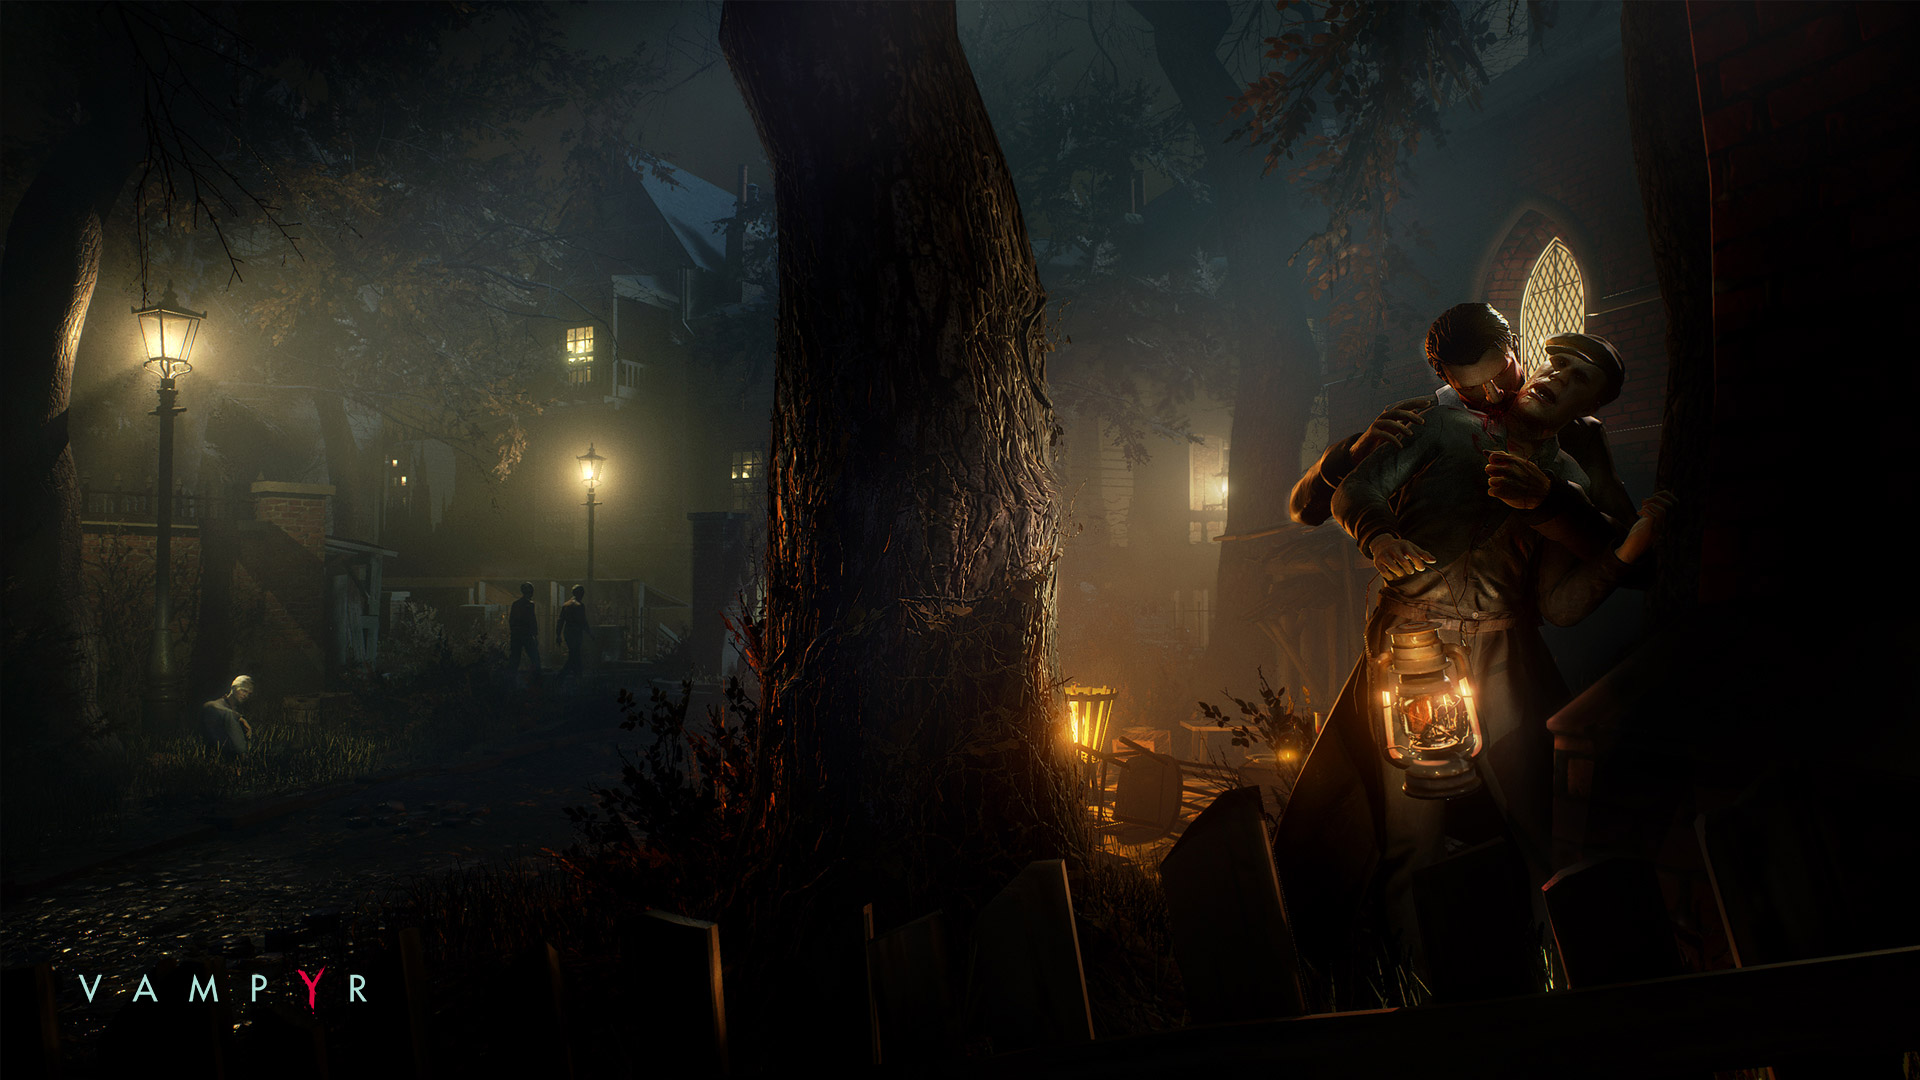 Review: Vampyr Is A Dark And Moody Action RPG With Serious Cult-appeal